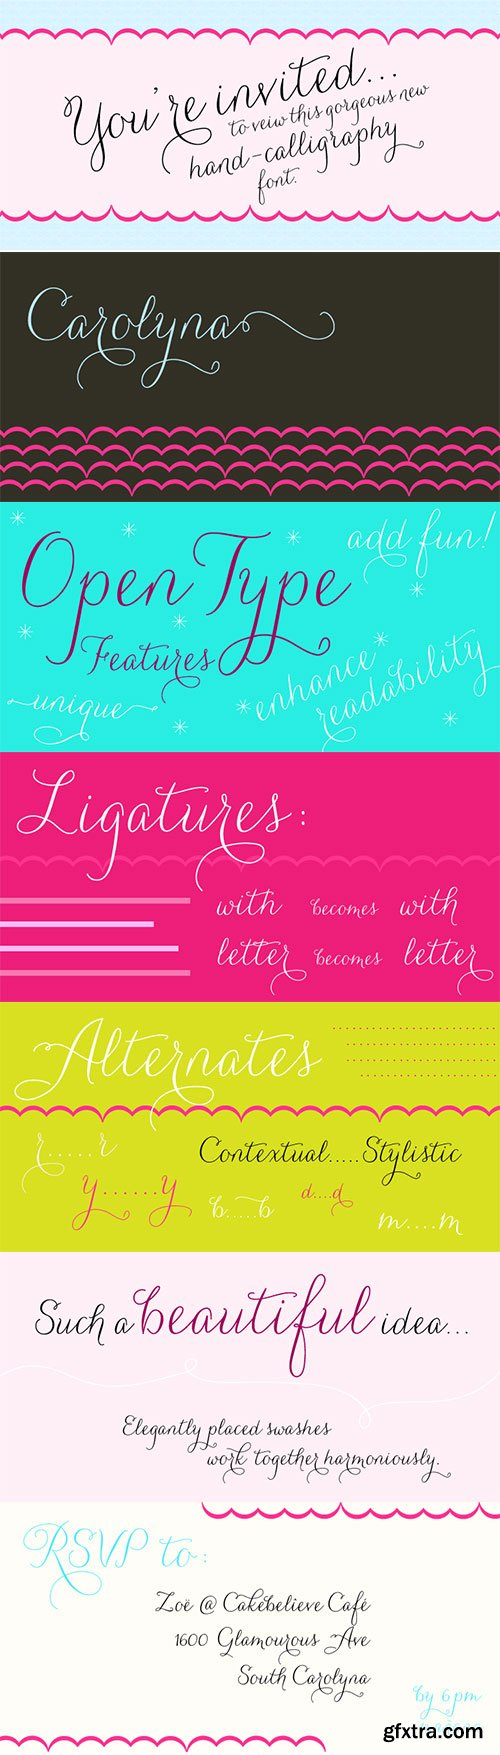 Carolyna Font Family 3 Handwritten Calligraphy Fonts $204